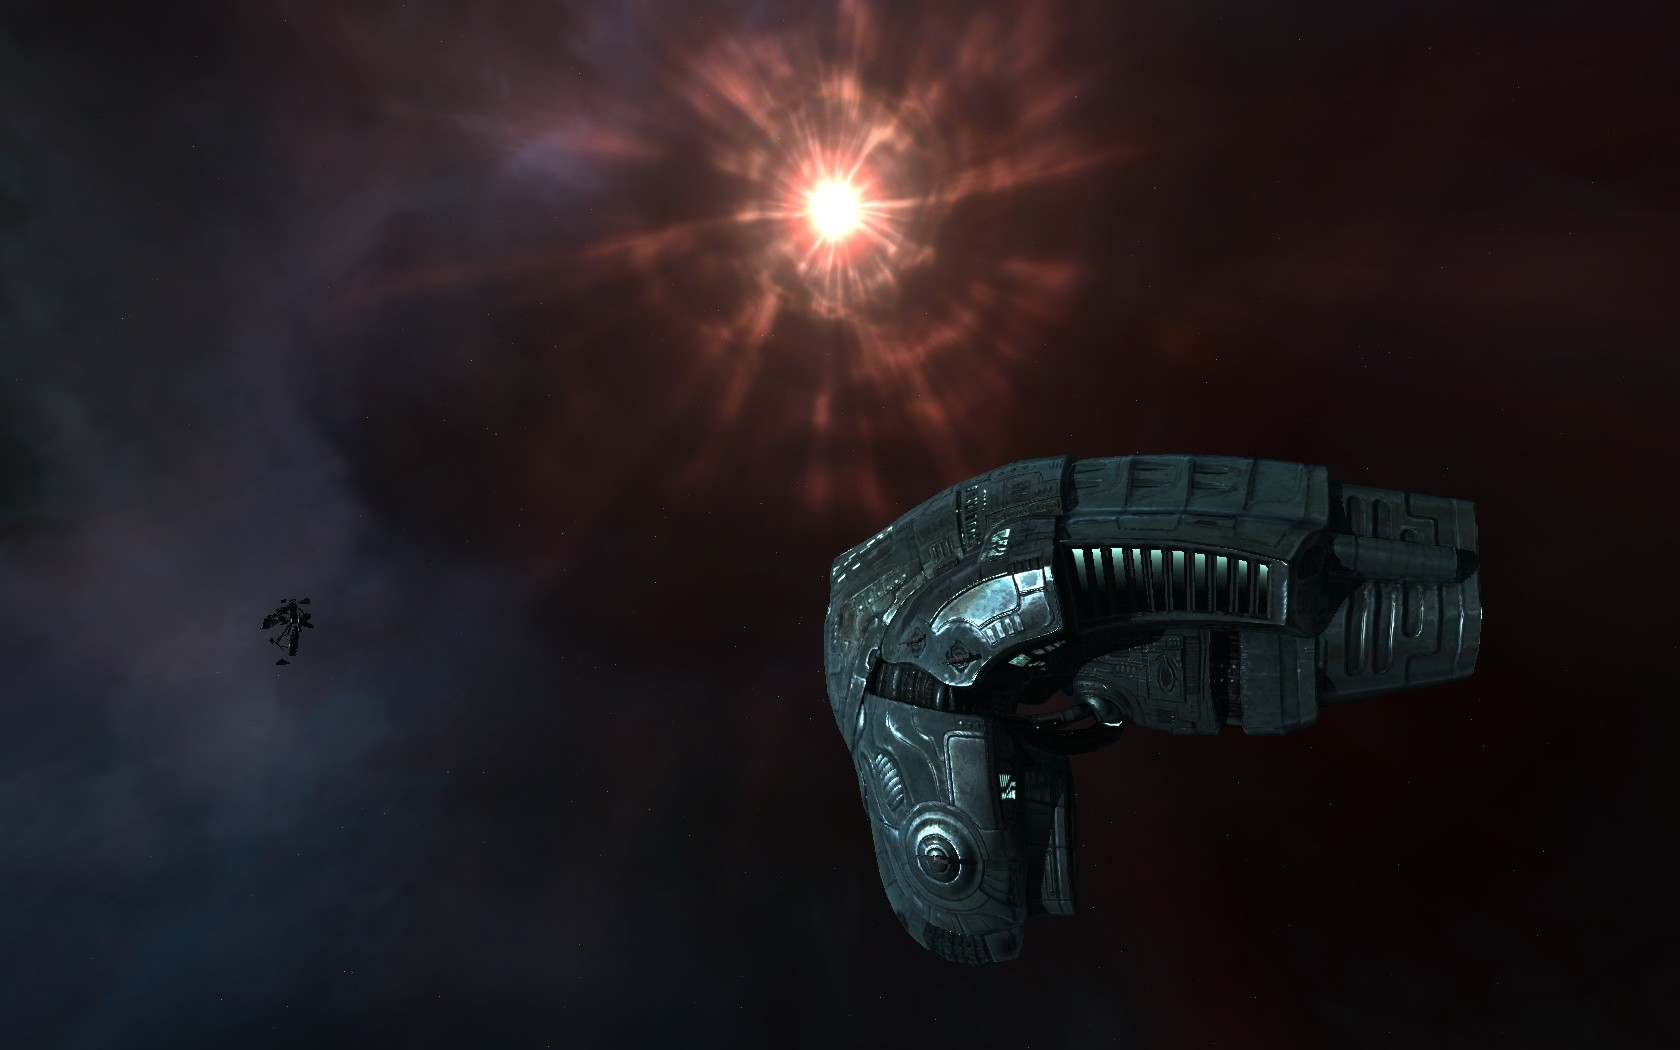 EVE Online - Vexor in Wormhole II